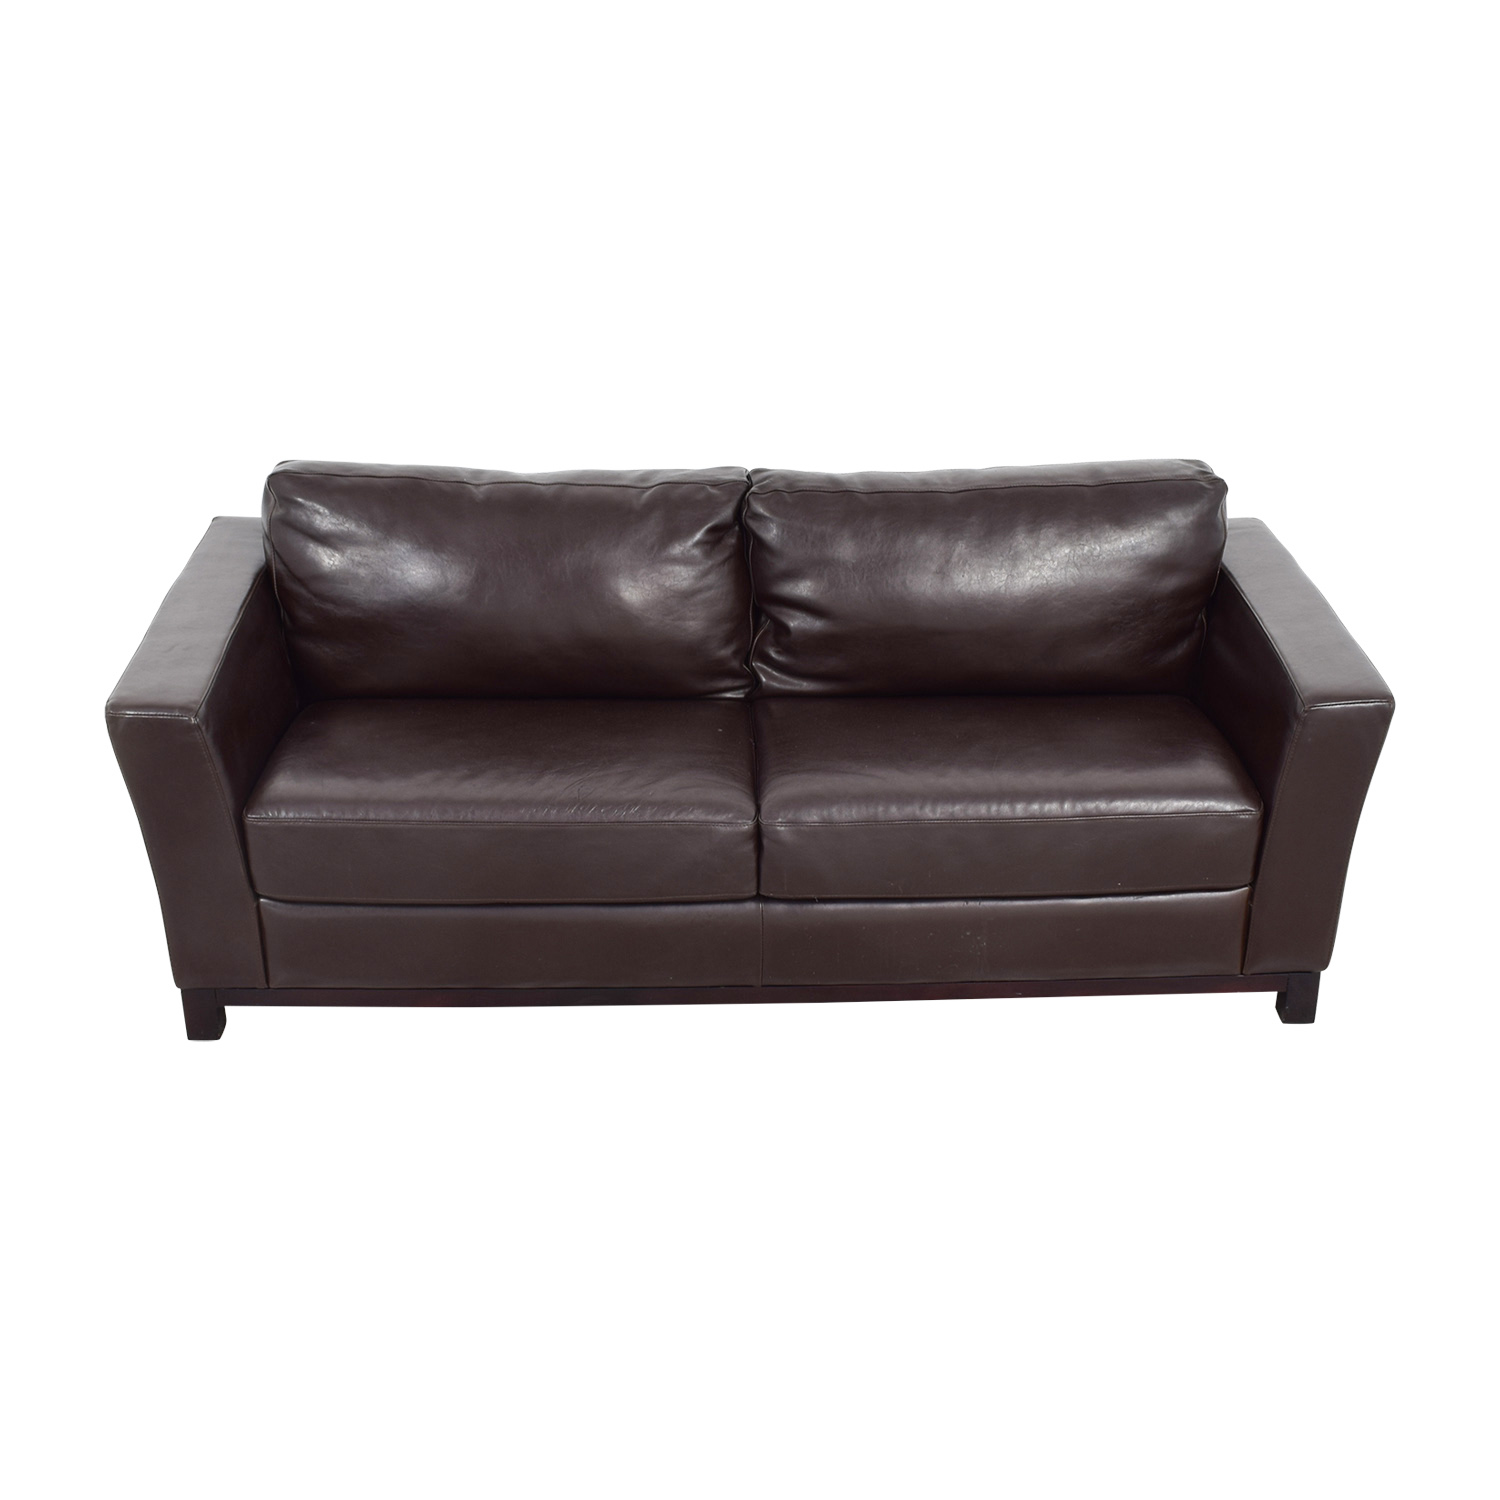 Online Sofas: Used Sofas Online Used Furniture For Wplace Design